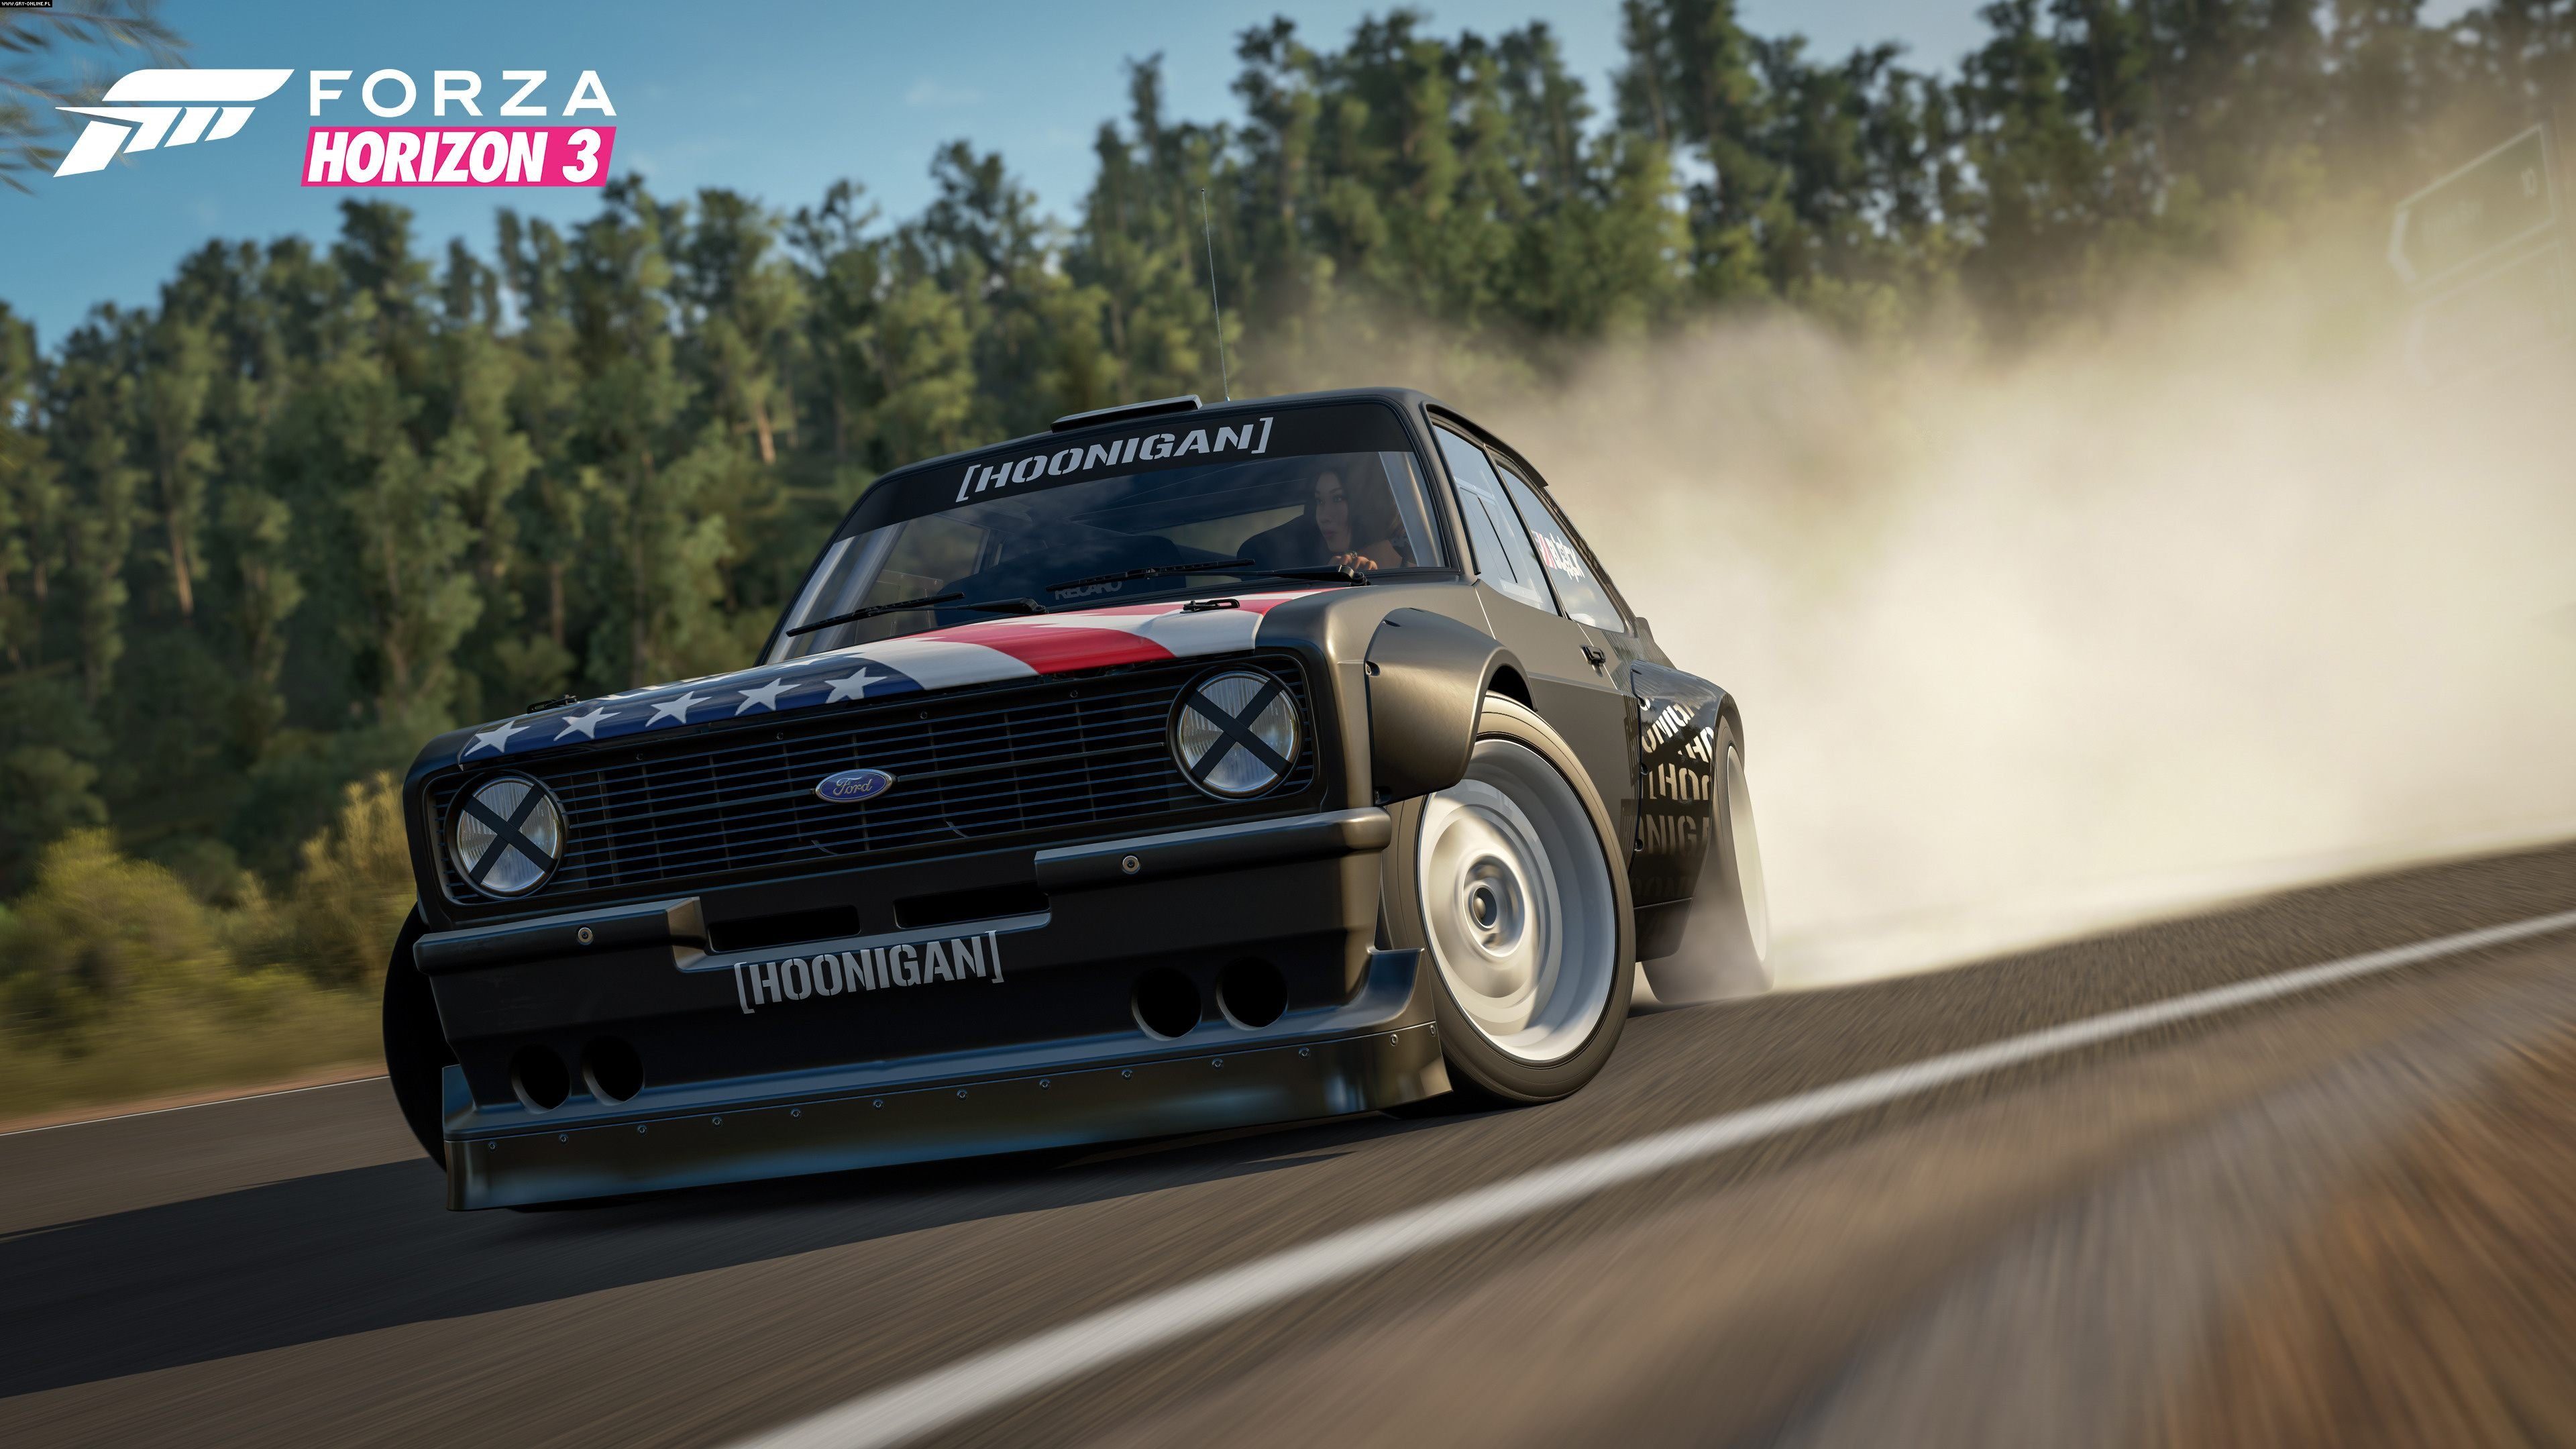 Forza Horizon 3 PC, XONE Gry Screen 4/101, Playground Games, Microsoft Studios